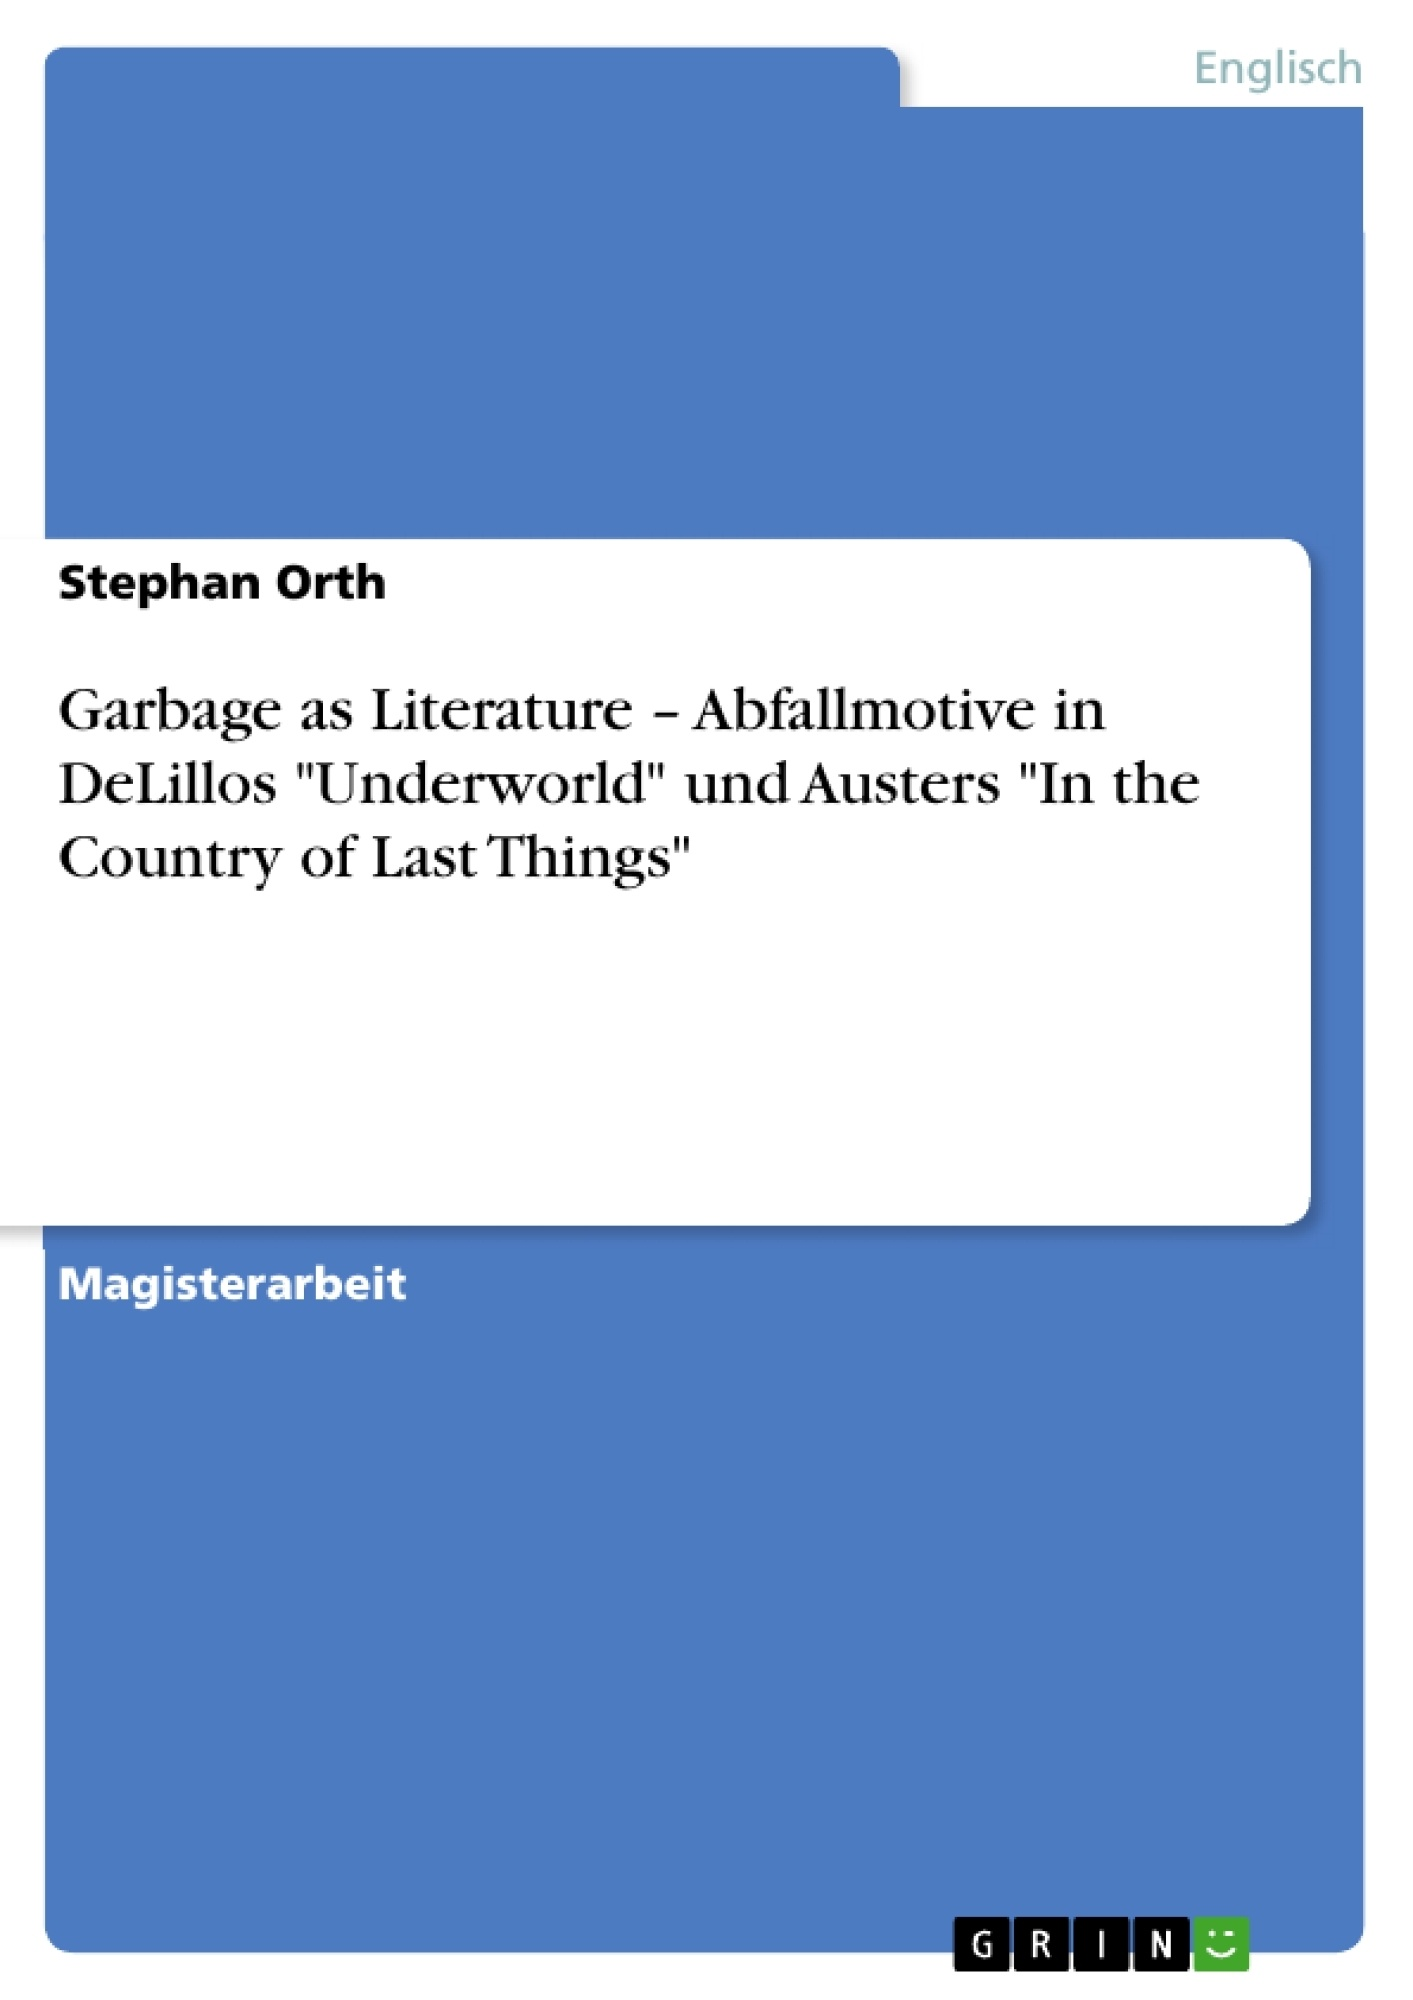 """Titel: Garbage as Literature – Abfallmotive in DeLillos """"Underworld"""" und Austers """"In the Country of Last Things"""""""